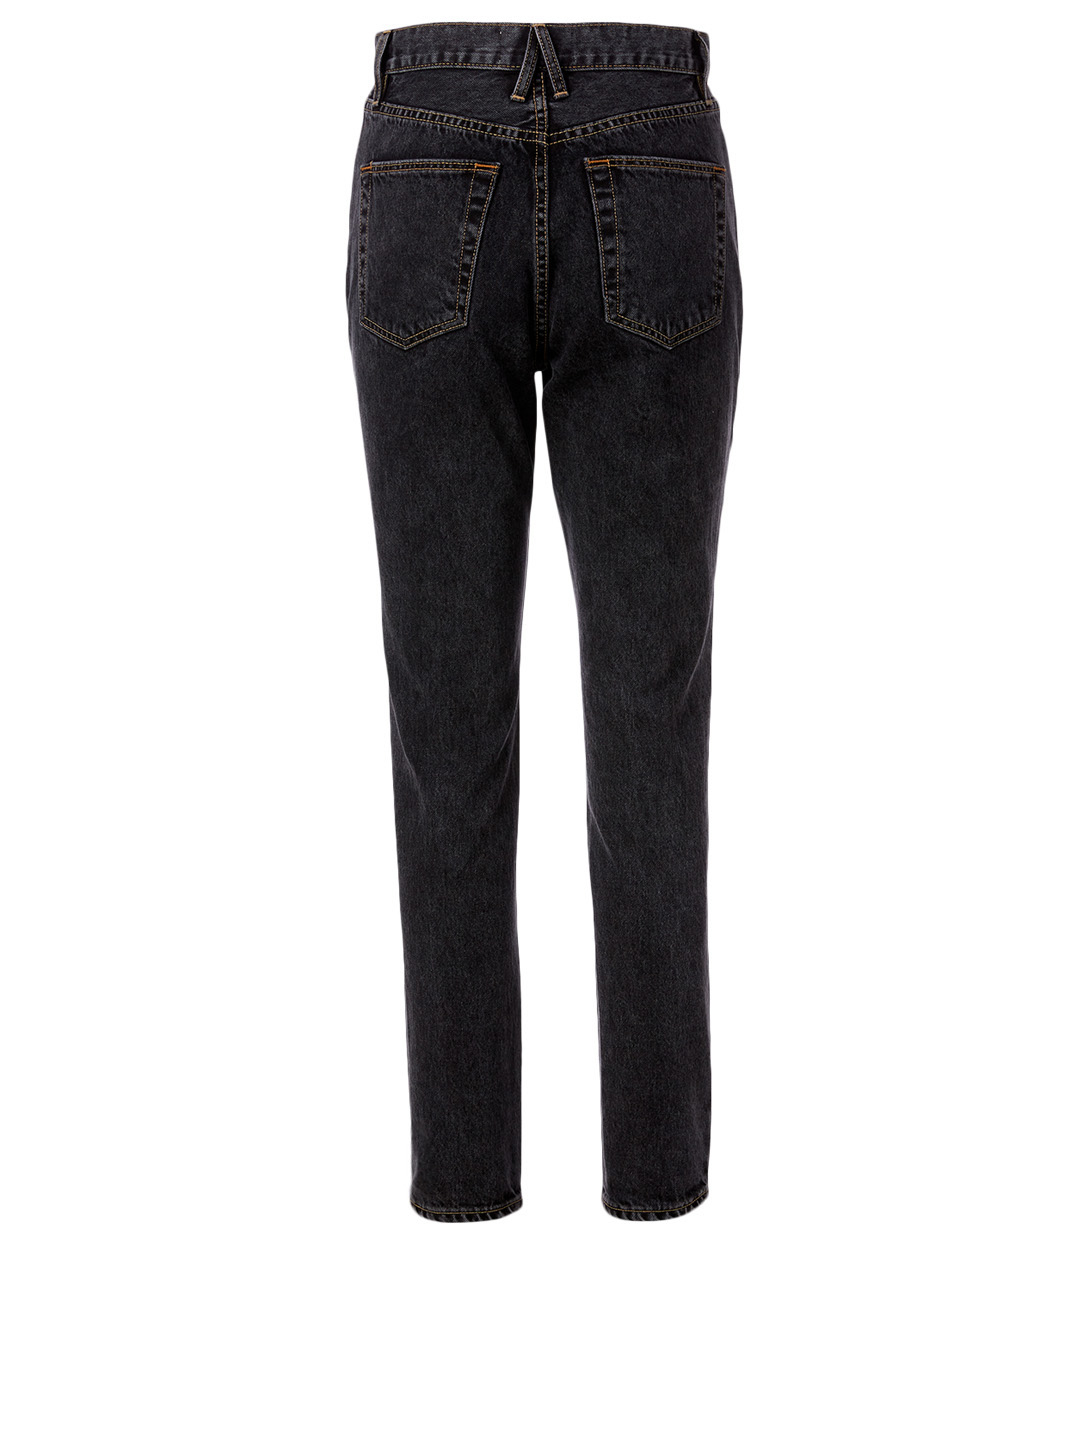 SLVRLAKE Beatnik Slim High-Waisted Jeans Women's Black